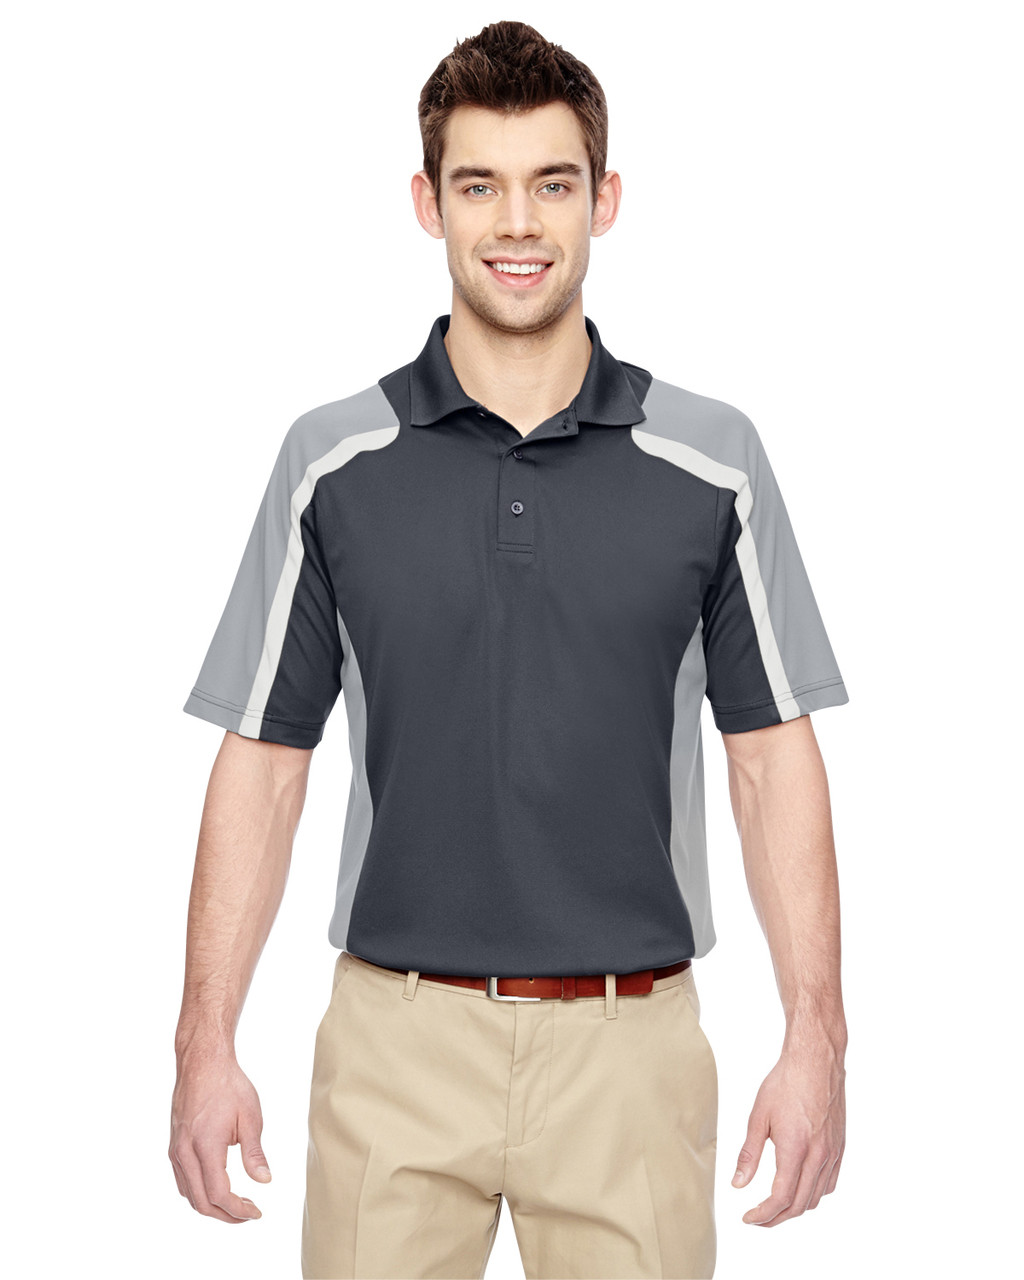 Classic Navy - 85119 Extreme Eperformance™ Snag Protection Polo Shirt